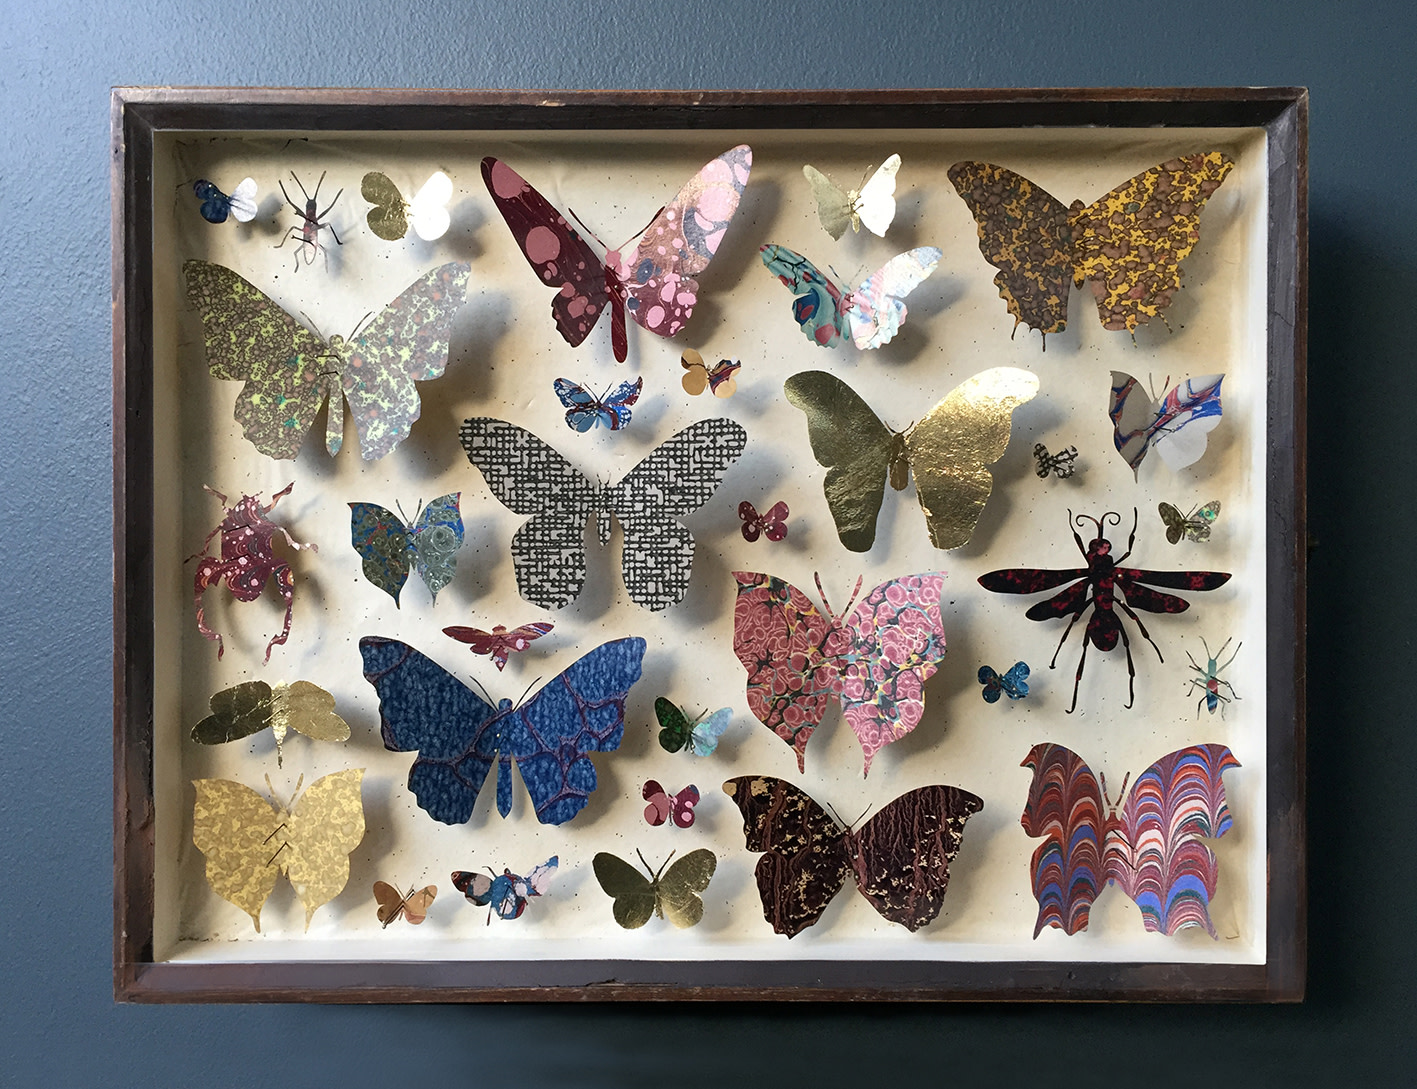 <span class=&#34;link fancybox-details-link&#34;><a href=&#34;/artists/142-helen-ward/works/6235-helen-ward-entomology-case-9-2019/&#34;>View Detail Page</a></span><div class=&#34;artist&#34;><strong>Helen Ward</strong></div> <div class=&#34;title&#34;><em>Entomology Case 9</em>, 2019</div> <div class=&#34;medium&#34;>Victorian entomology drawer, hand-marbled papers, gold leaf, entamel pins</div> <div class=&#34;dimensions&#34;>29 x 39 cm</div><div class=&#34;price&#34;>£595.00</div><div class=&#34;copyright_line&#34;>Own Art: £ 59.50 x 10 Monthly 0% APR Payments</div>